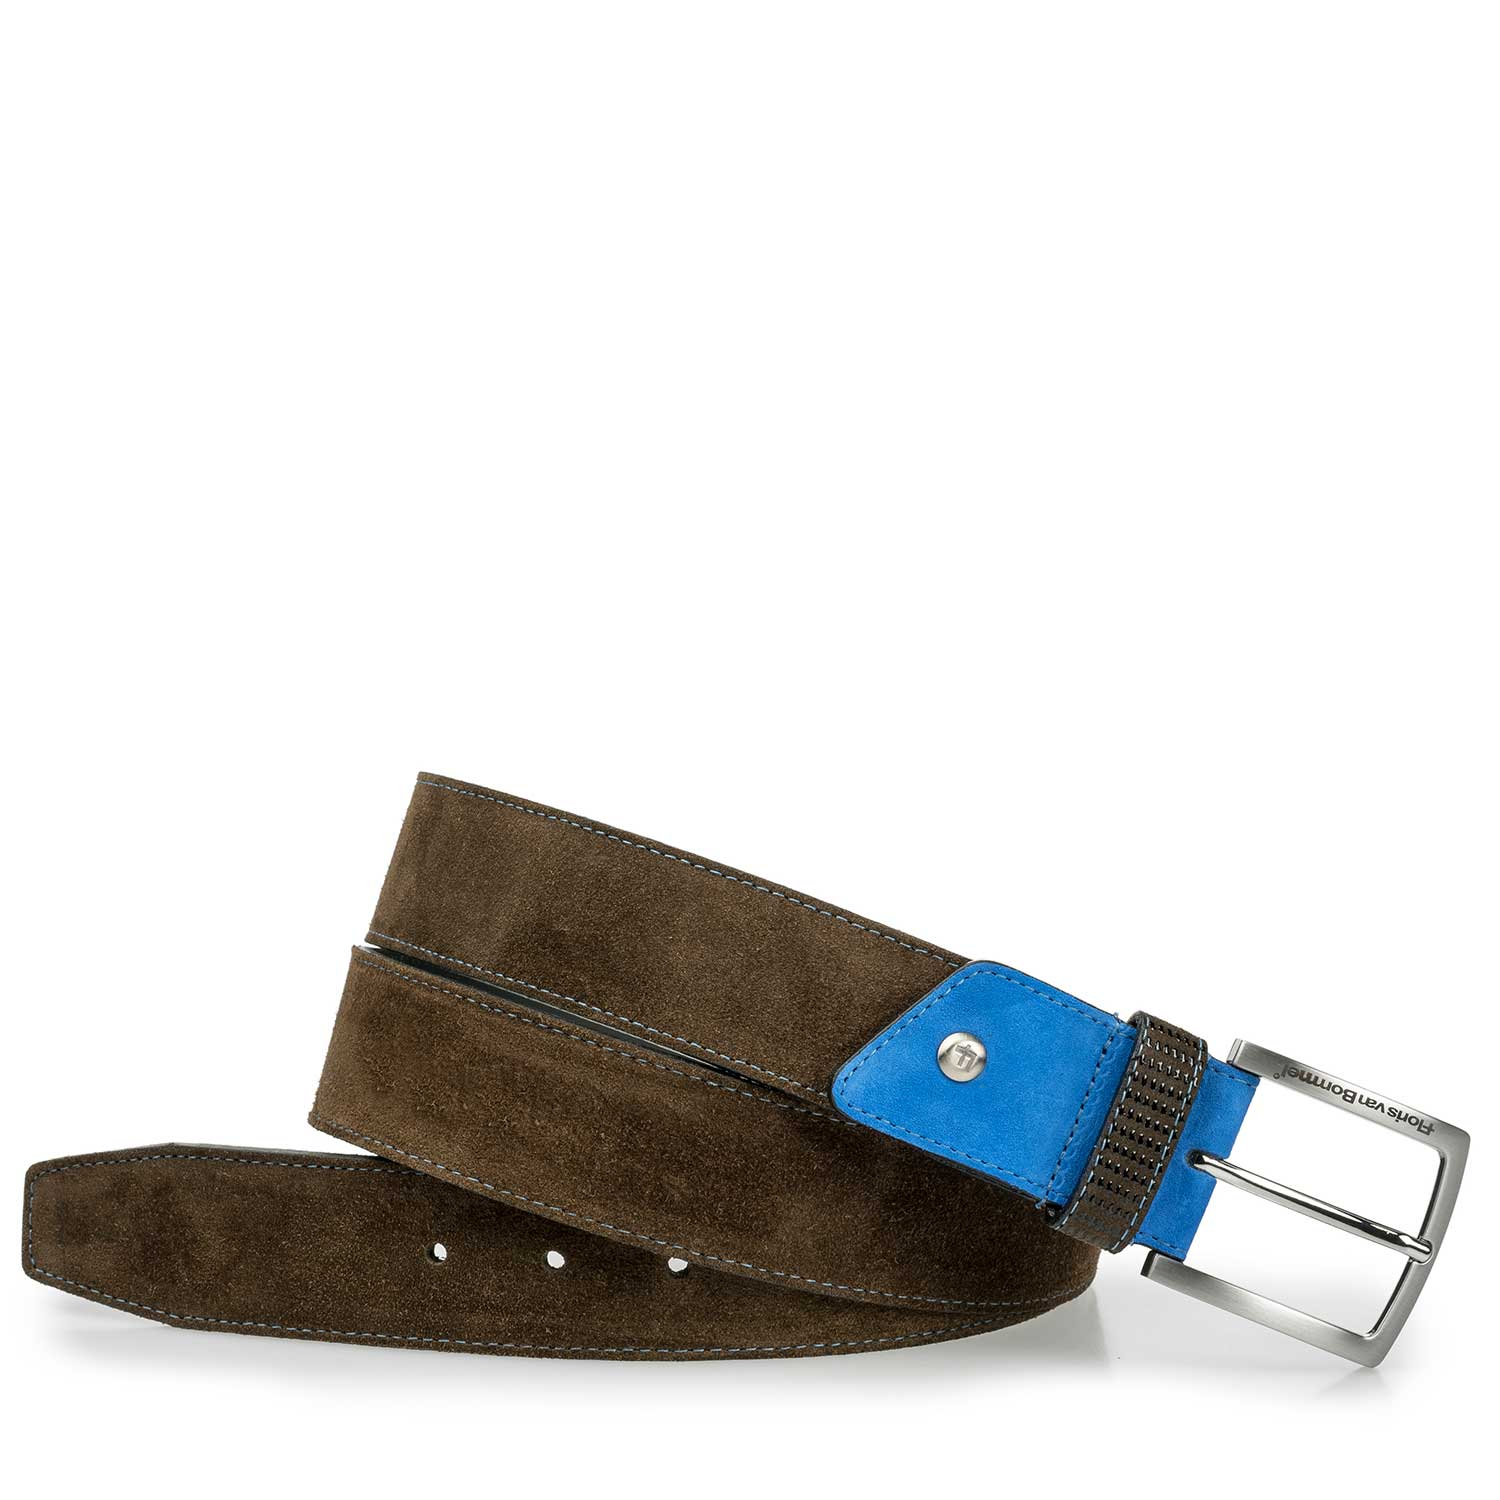 75192/02 - Olive green suede leather belt with a black pattern